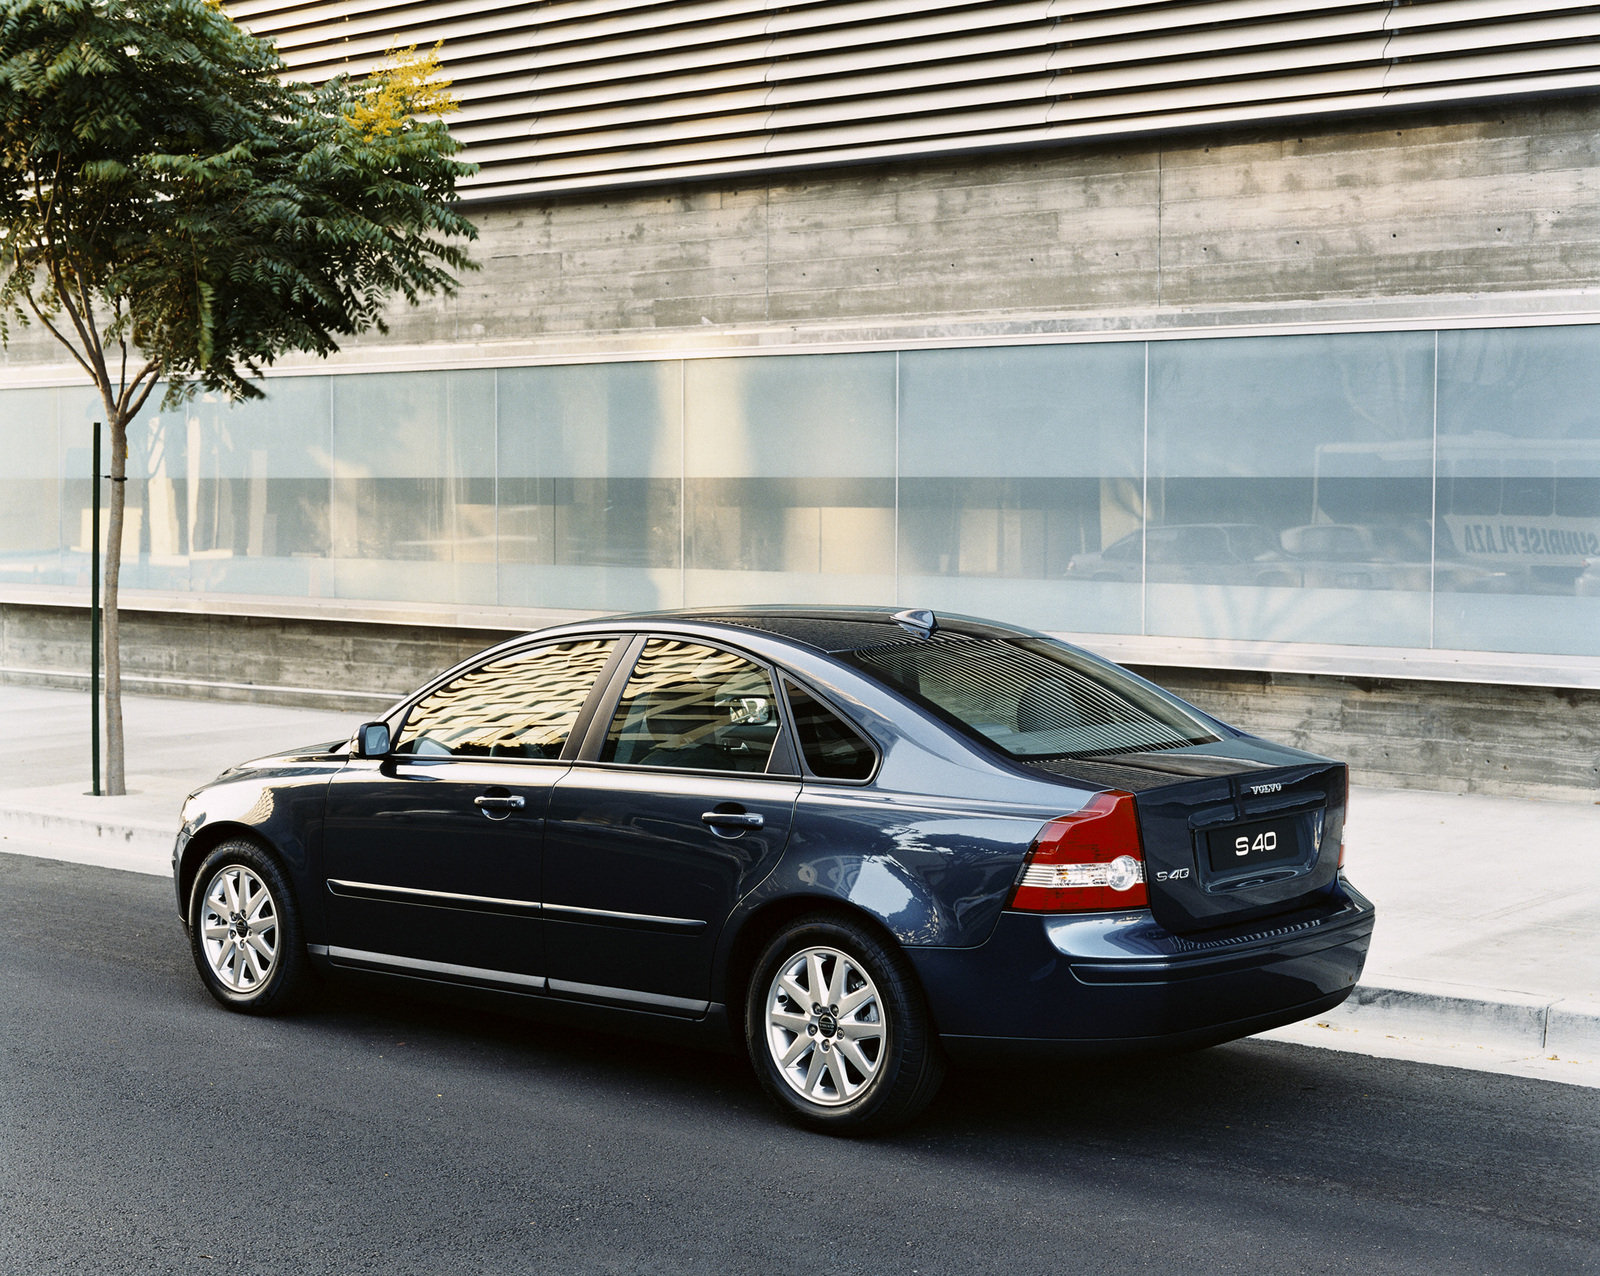 2007 volvo s40 picture 94993 car review top speed. Black Bedroom Furniture Sets. Home Design Ideas